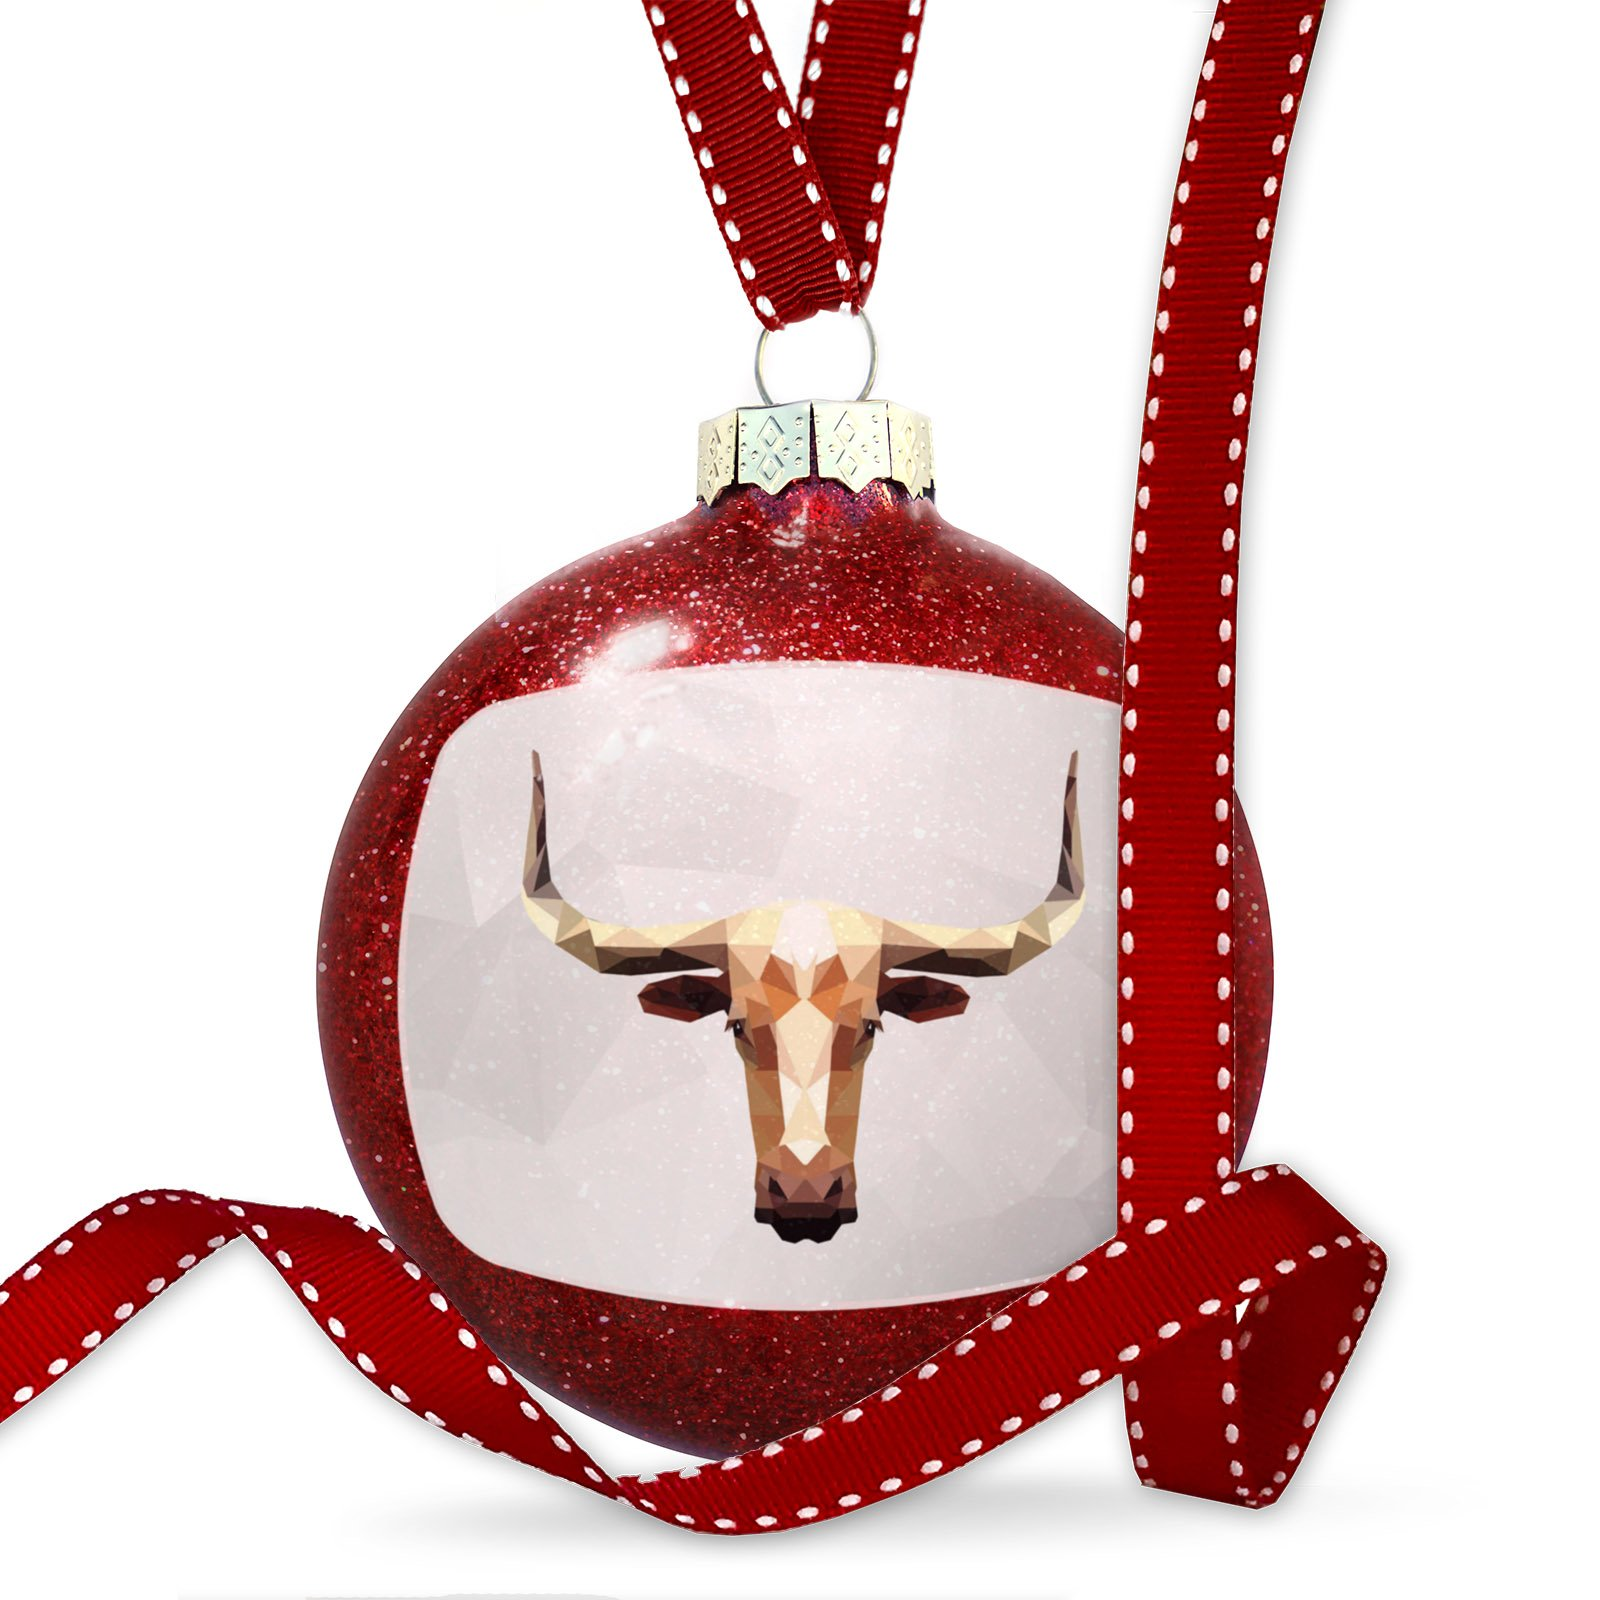 Christmas Decoration Low Poly zoo Animals Longhorn Ornament by NEONBLOND